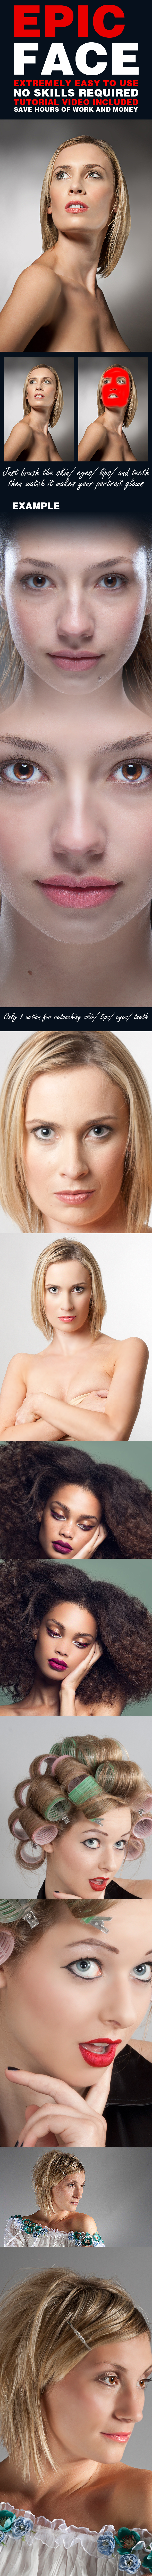 Epic Face Skin Retouch Action